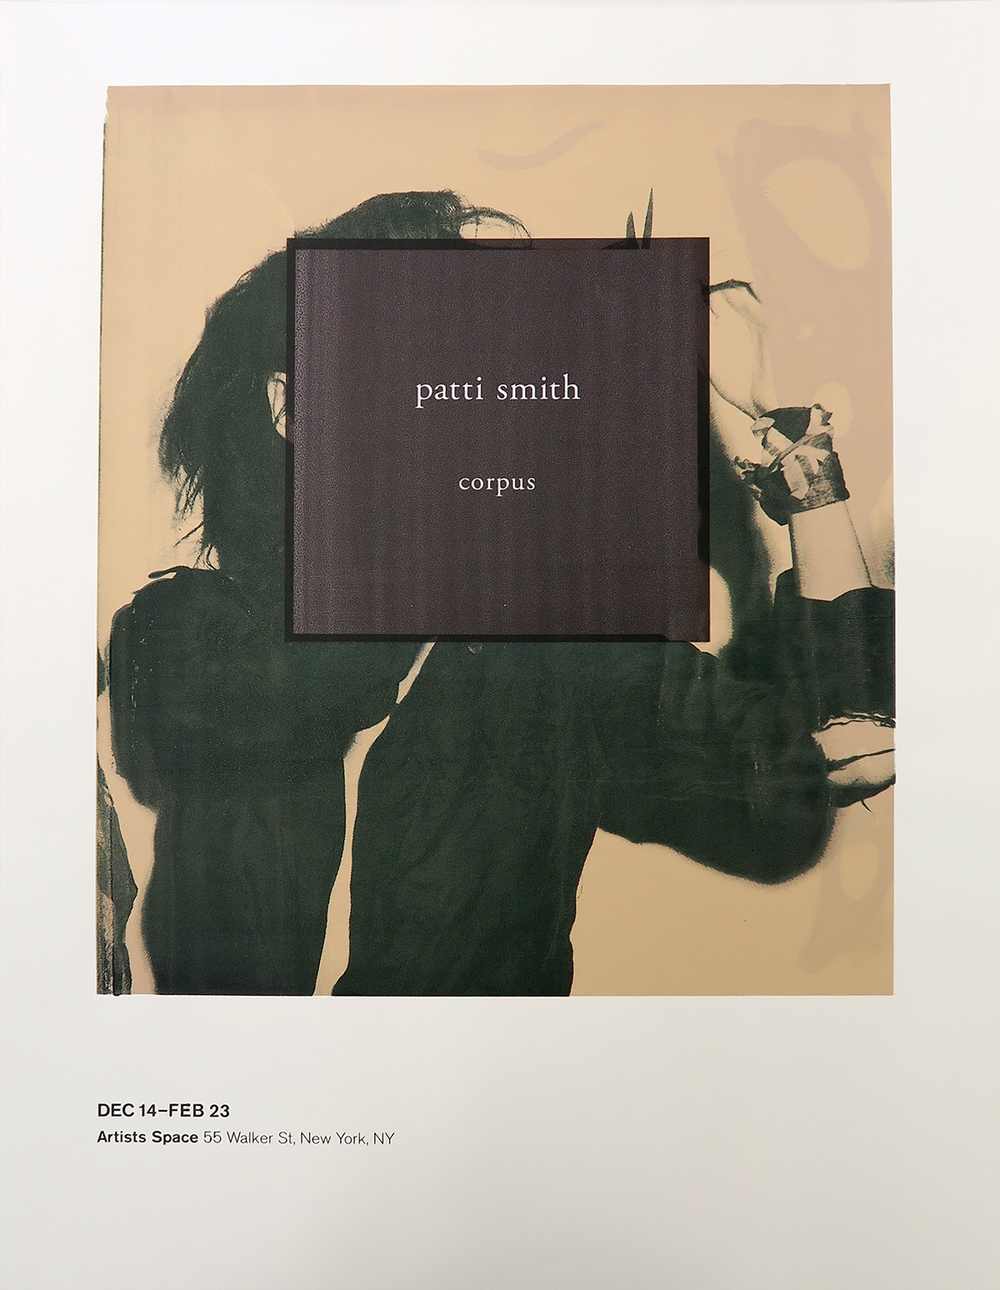 carmen-mcleod_patti-smith_f14.png